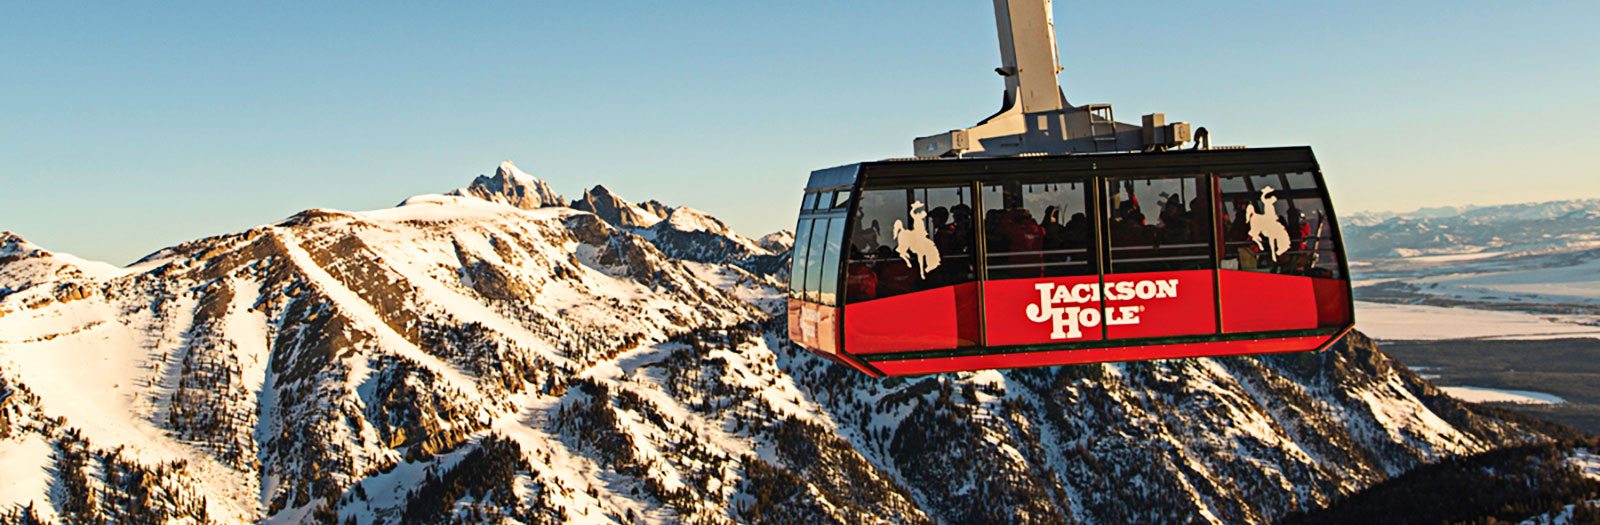 Browse the best Jackson Hole lodging, stay and ski vacation packages